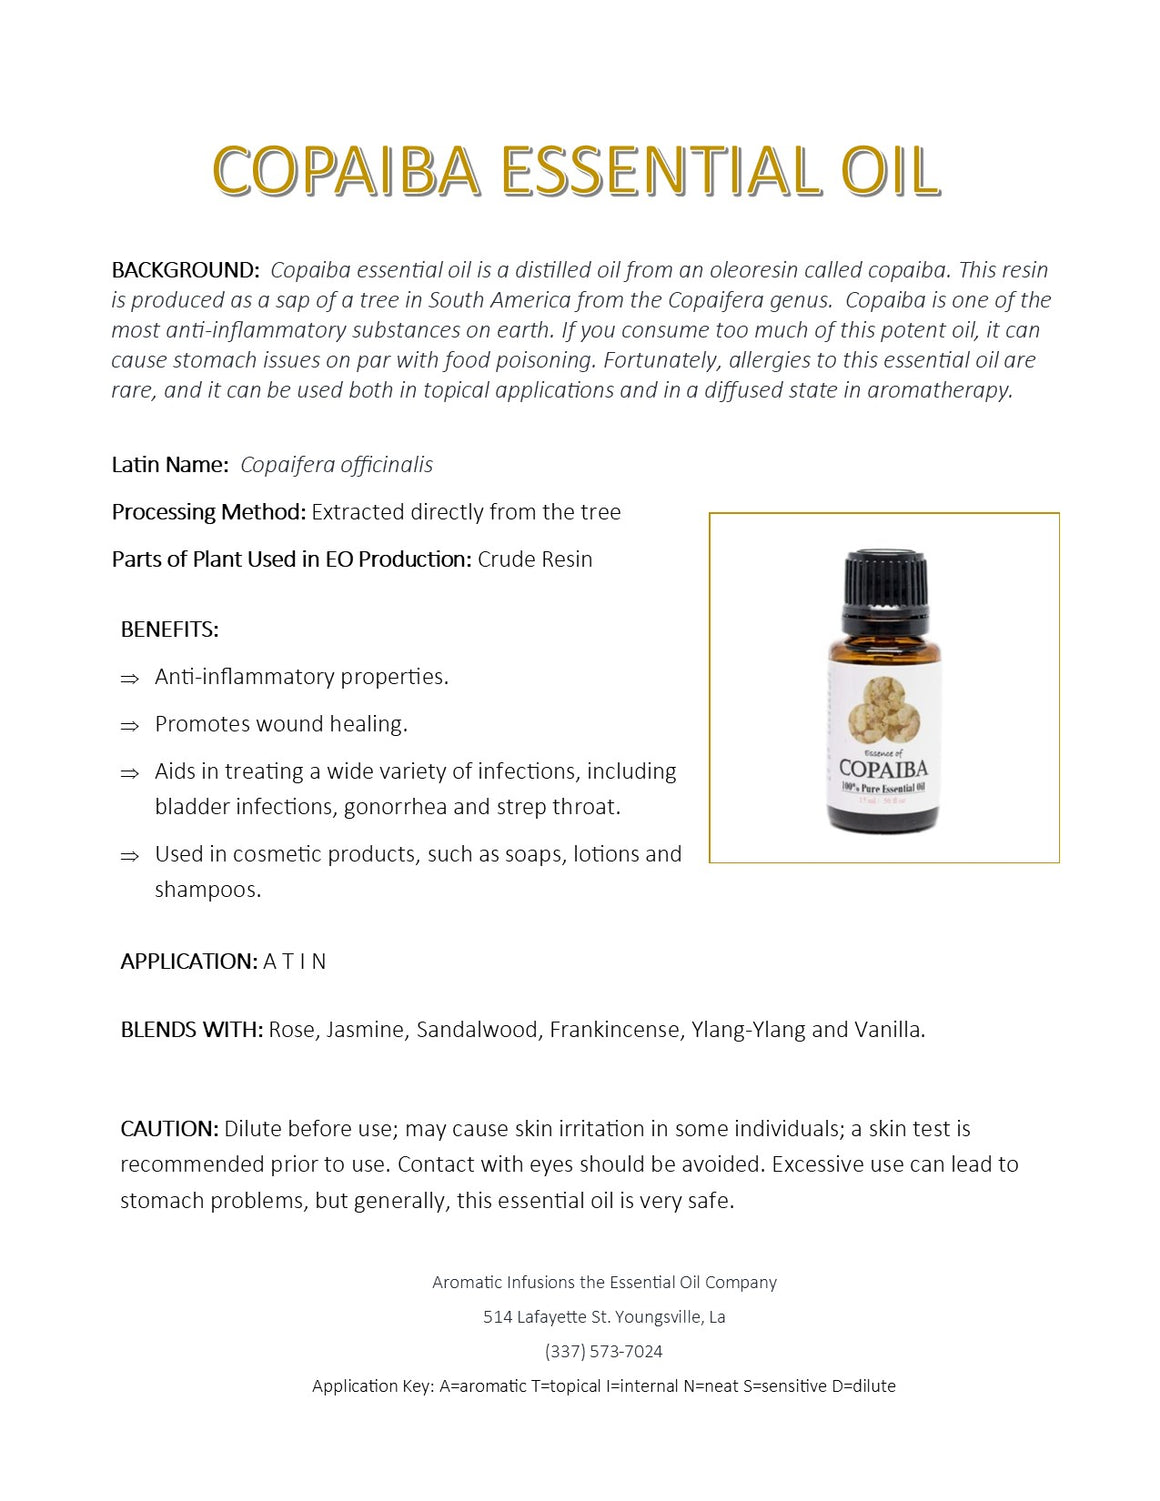 Copaiba Essential Oil 15ml - Aromatic Infusions